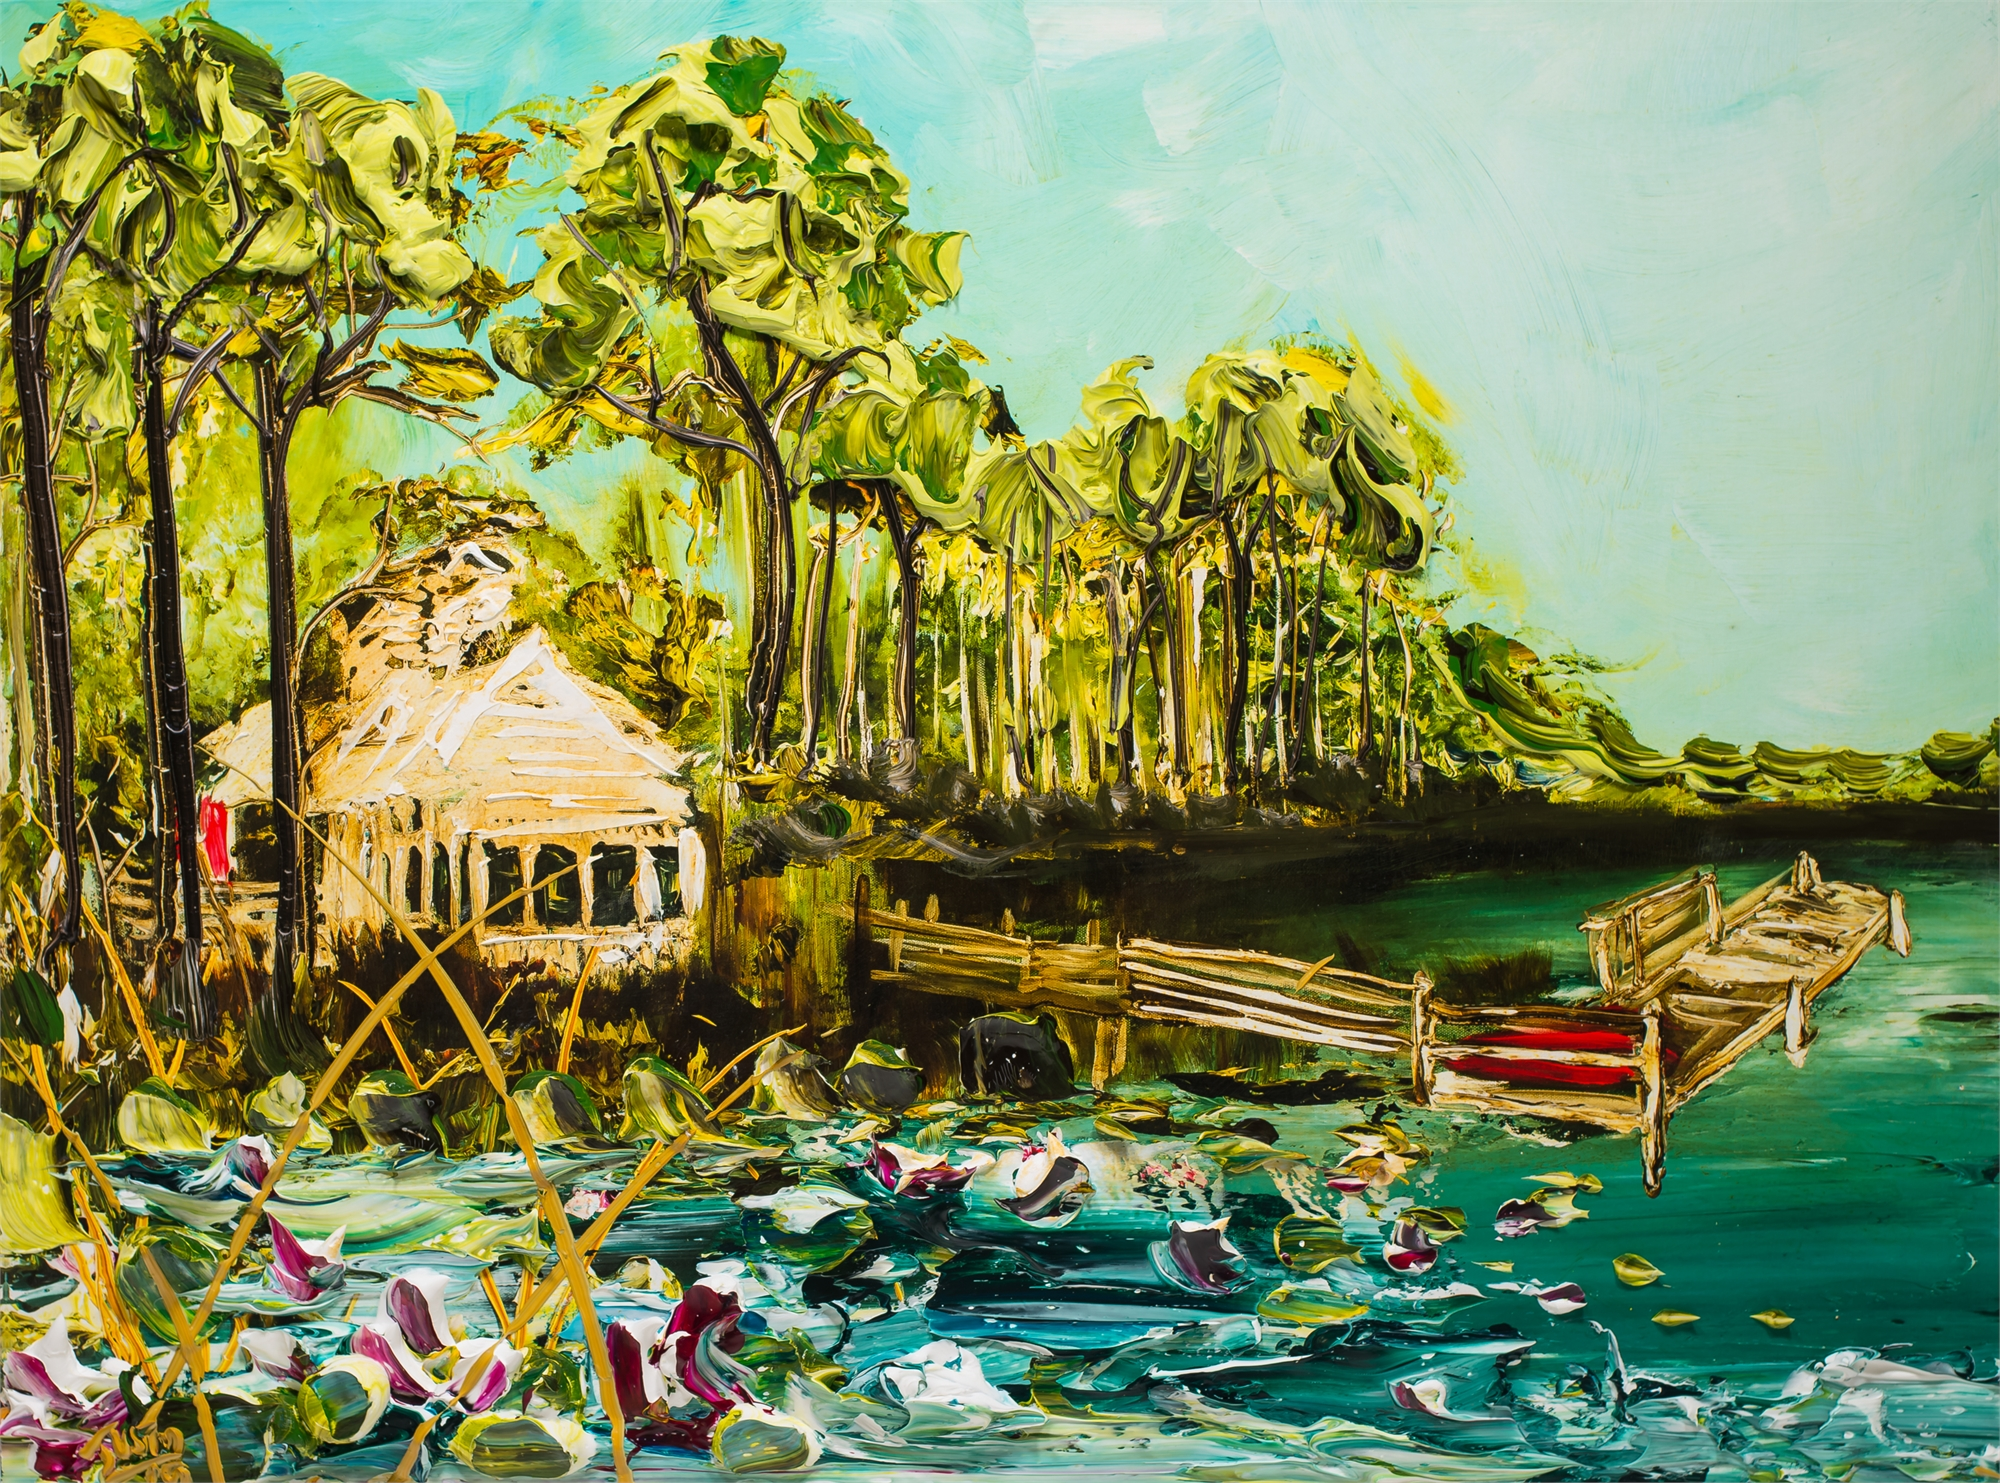 WATERCOLOR BOATHOUSE HPAE5/50 by Justin Gaffrey